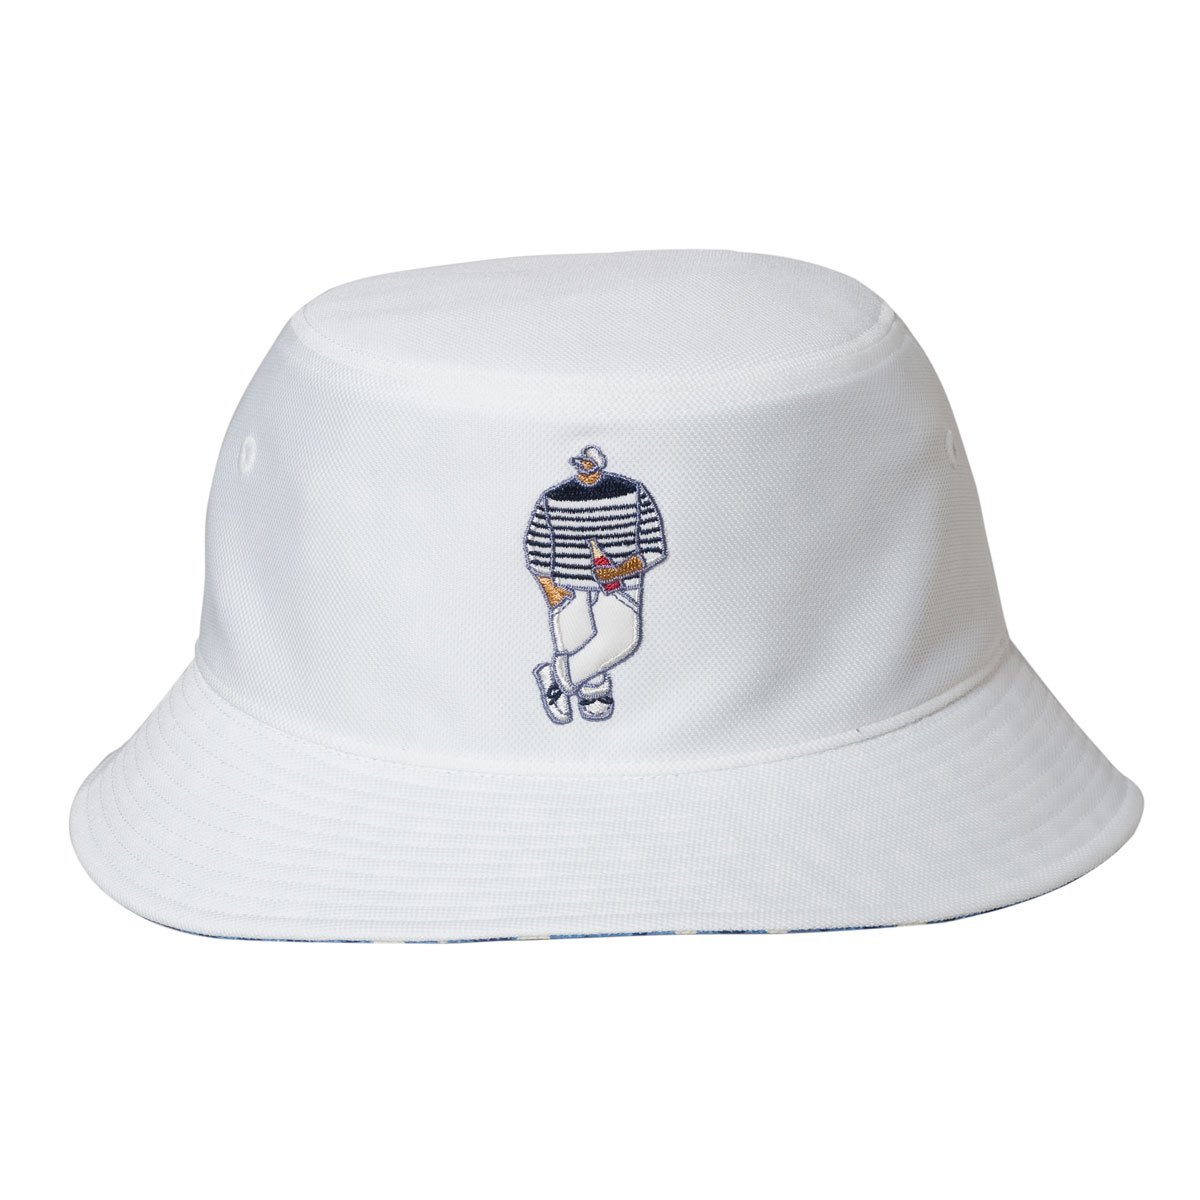 Cova SINACOVA 18177760 Men's Reversible Bucket Hat Off-White One-Size